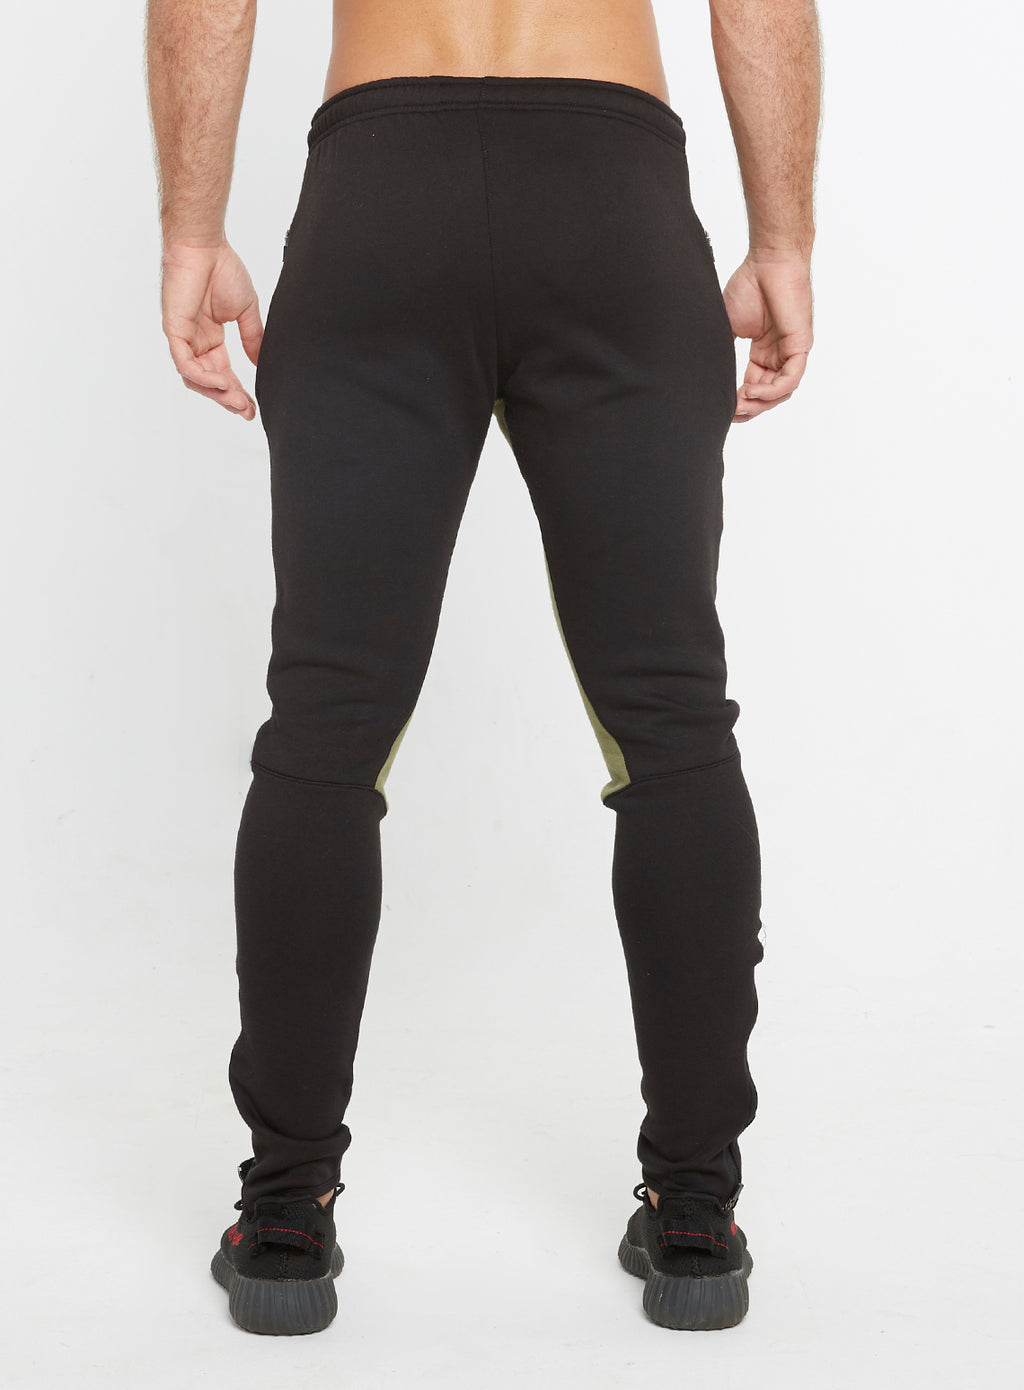 Gym Monkee - Black and Khaki Joggers REAR